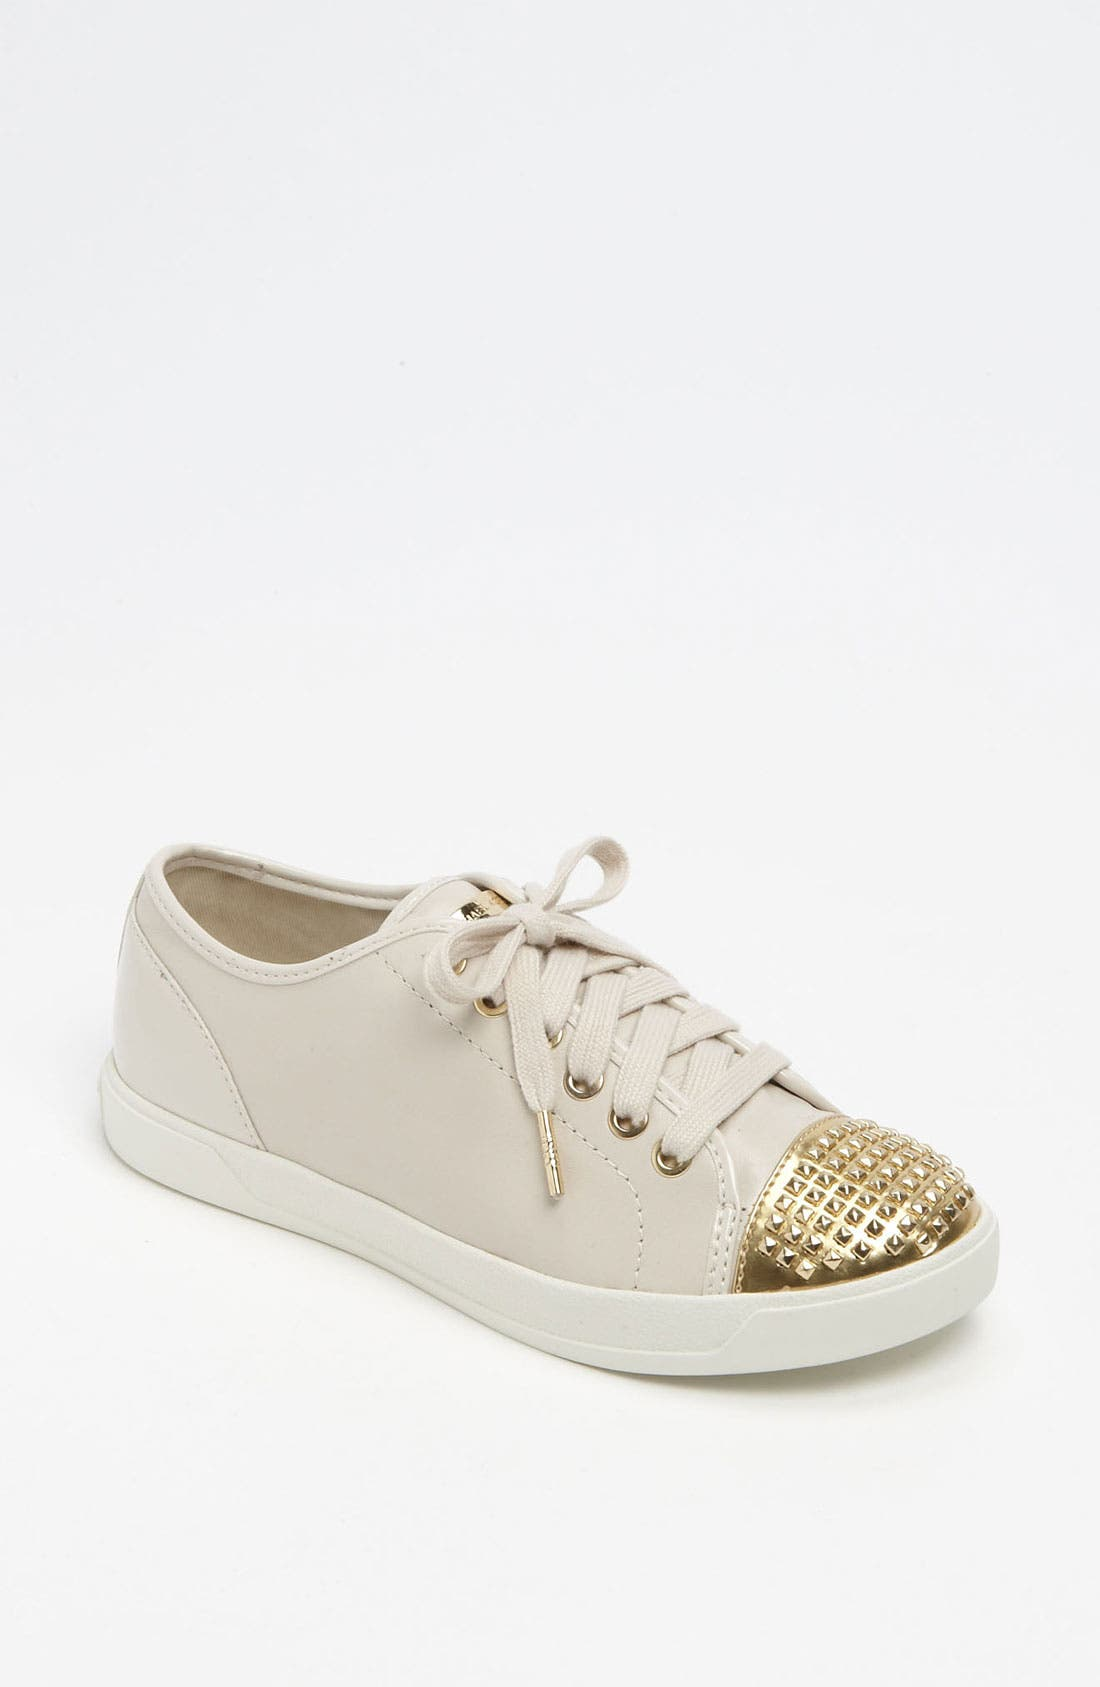 Alternate Image 1 Selected - MICHAEL Michael Kors Studded Sneaker